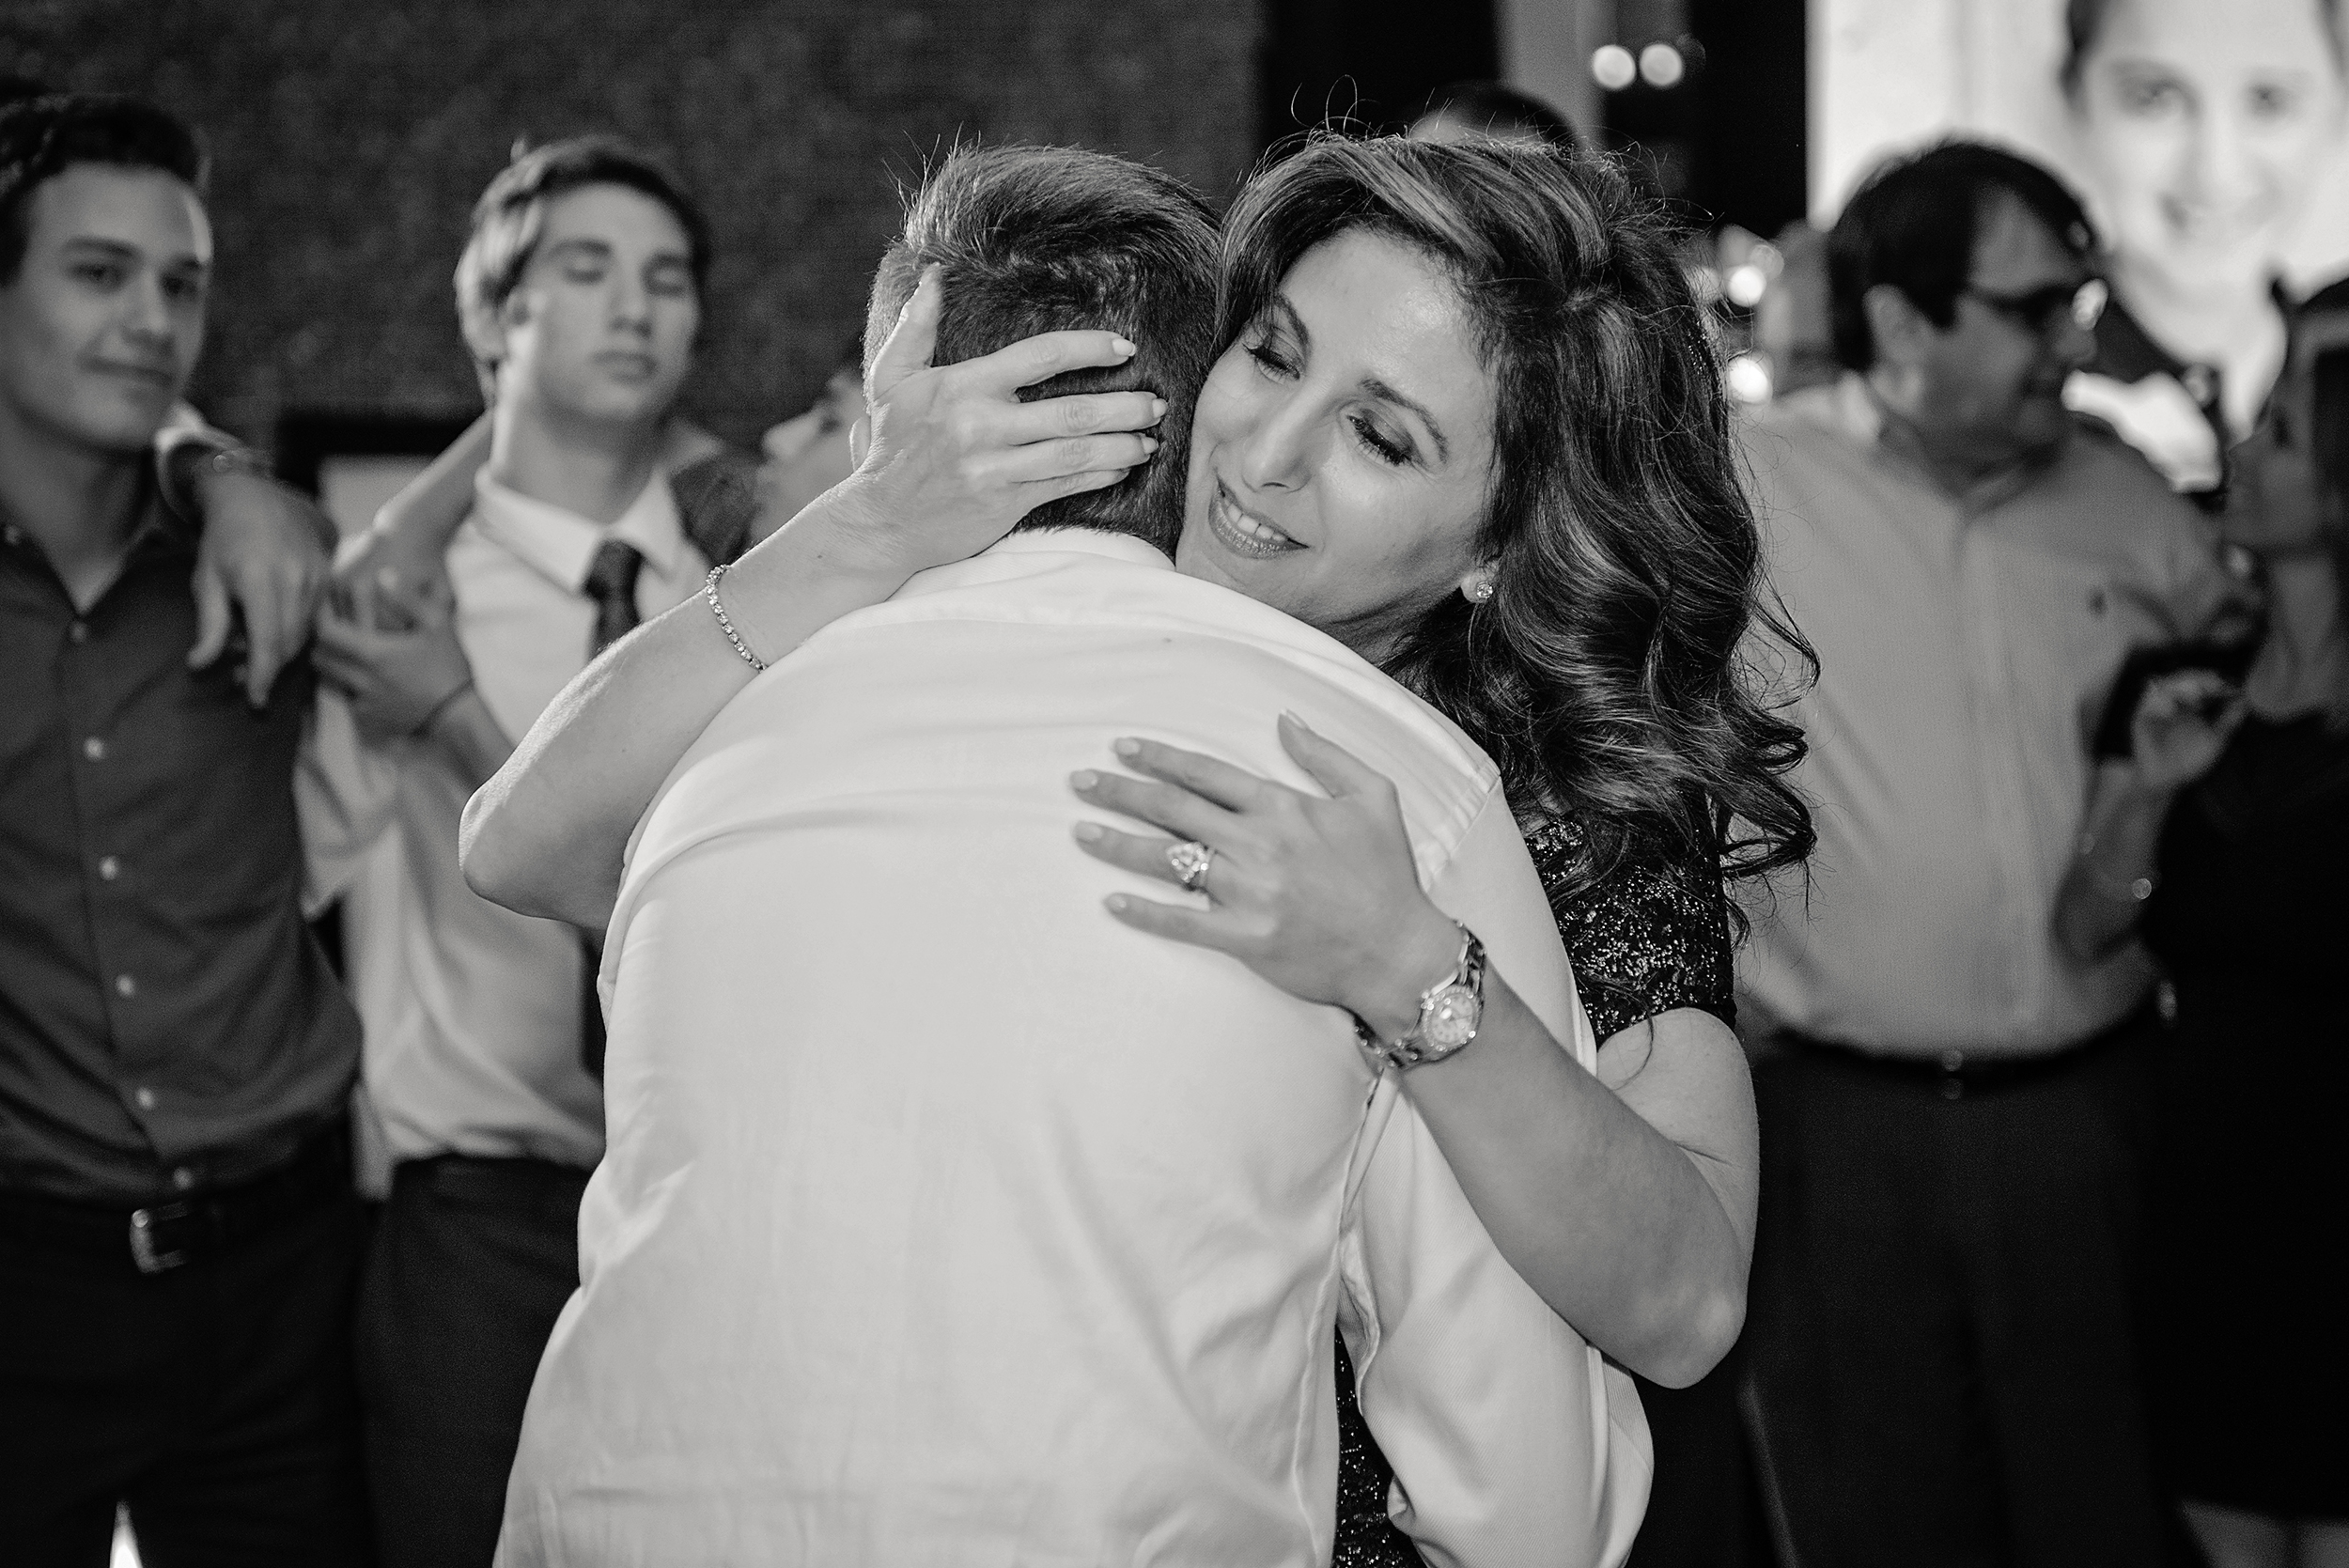 mitzvah-event-photography-south-florida-alison-frank-photography_26.jpg